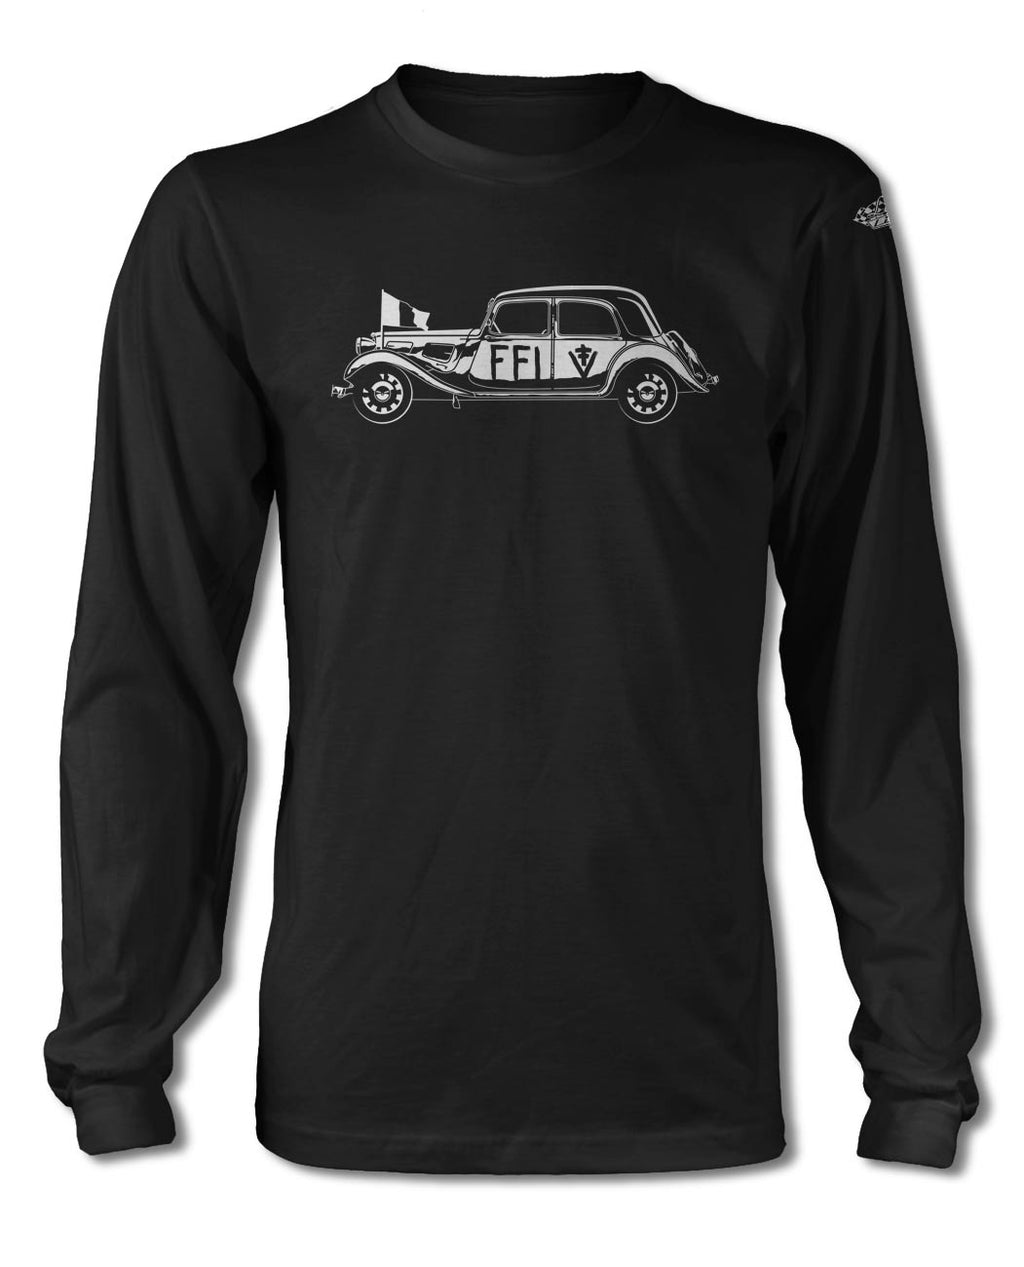 Citroen Traction Avant 11BL FFI 1944 - 1945 T-Shirt - Long Sleeves - Side View